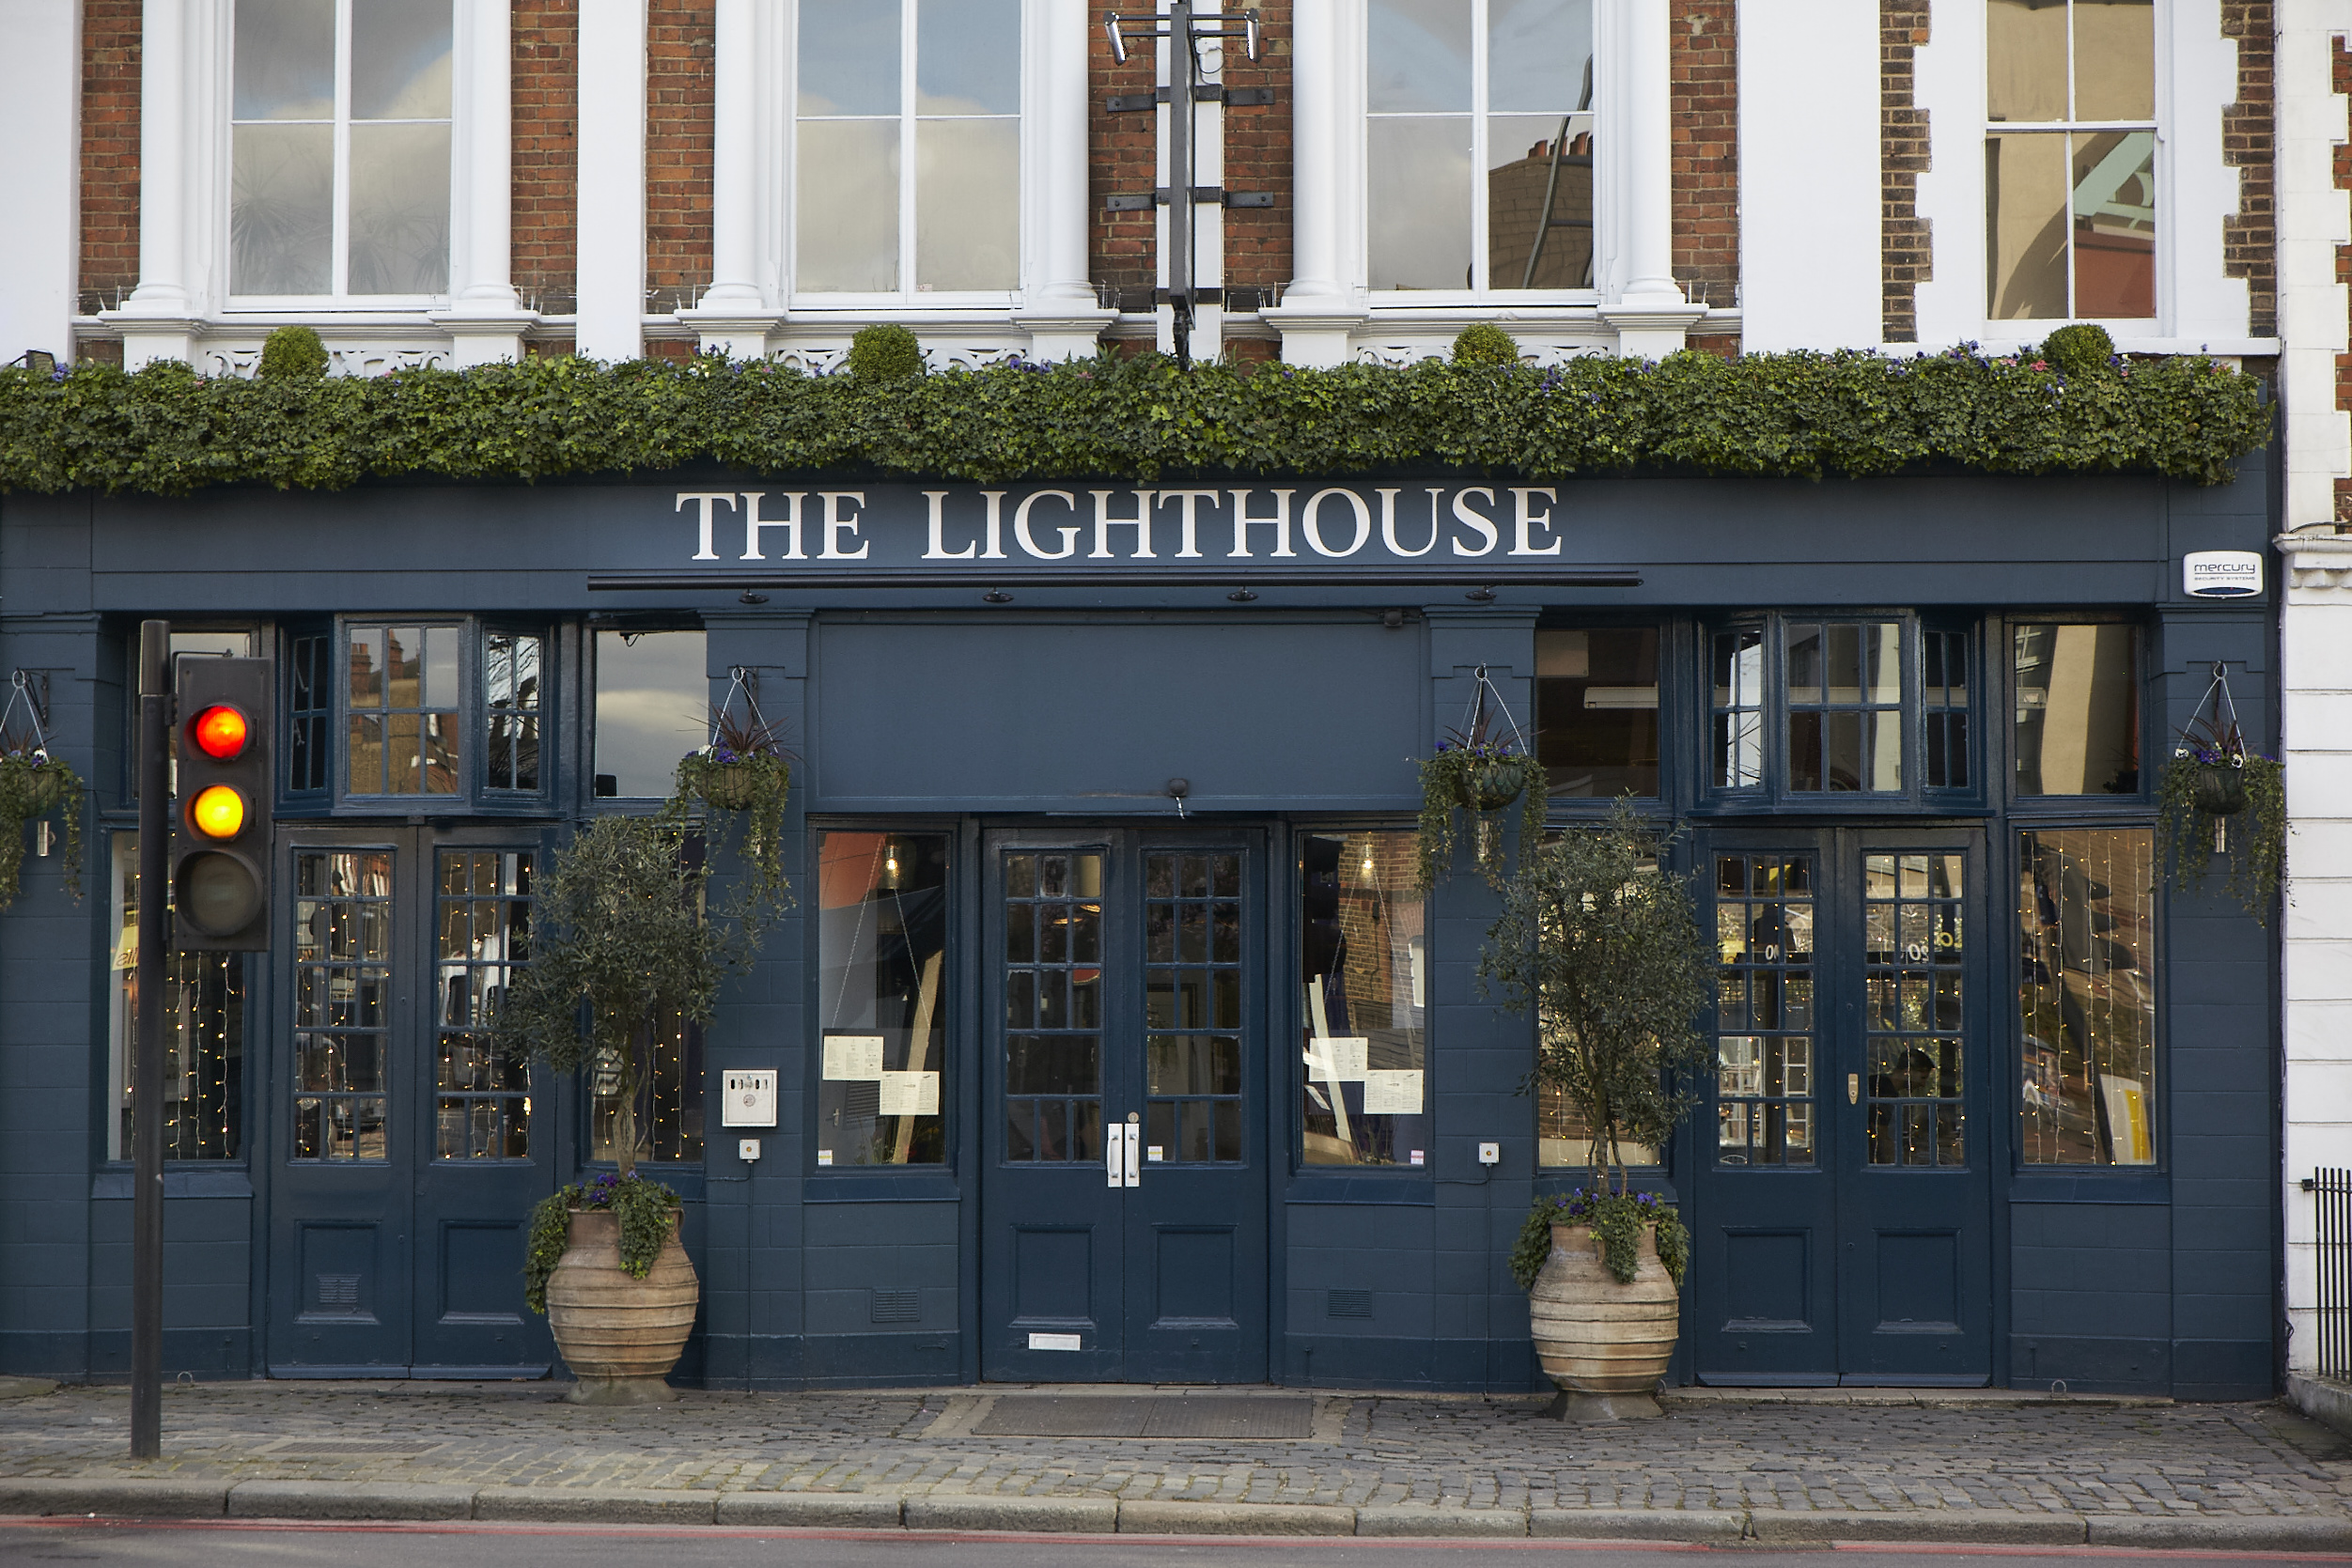 The Lighthouse Battersea